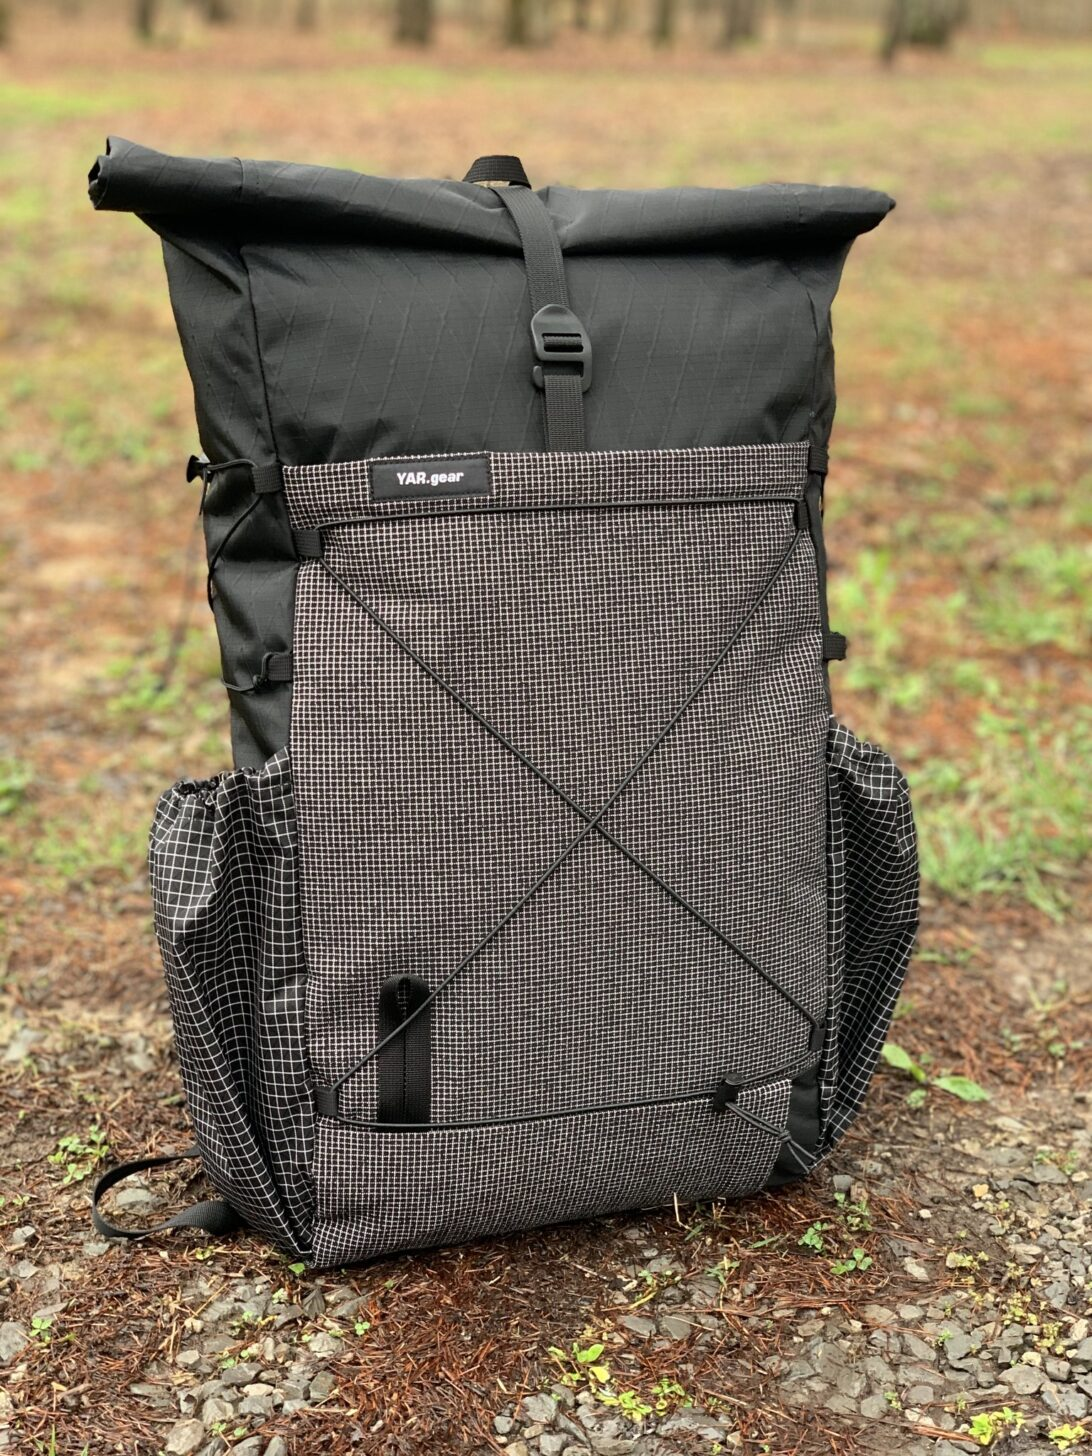 a backpack sits on the ground.